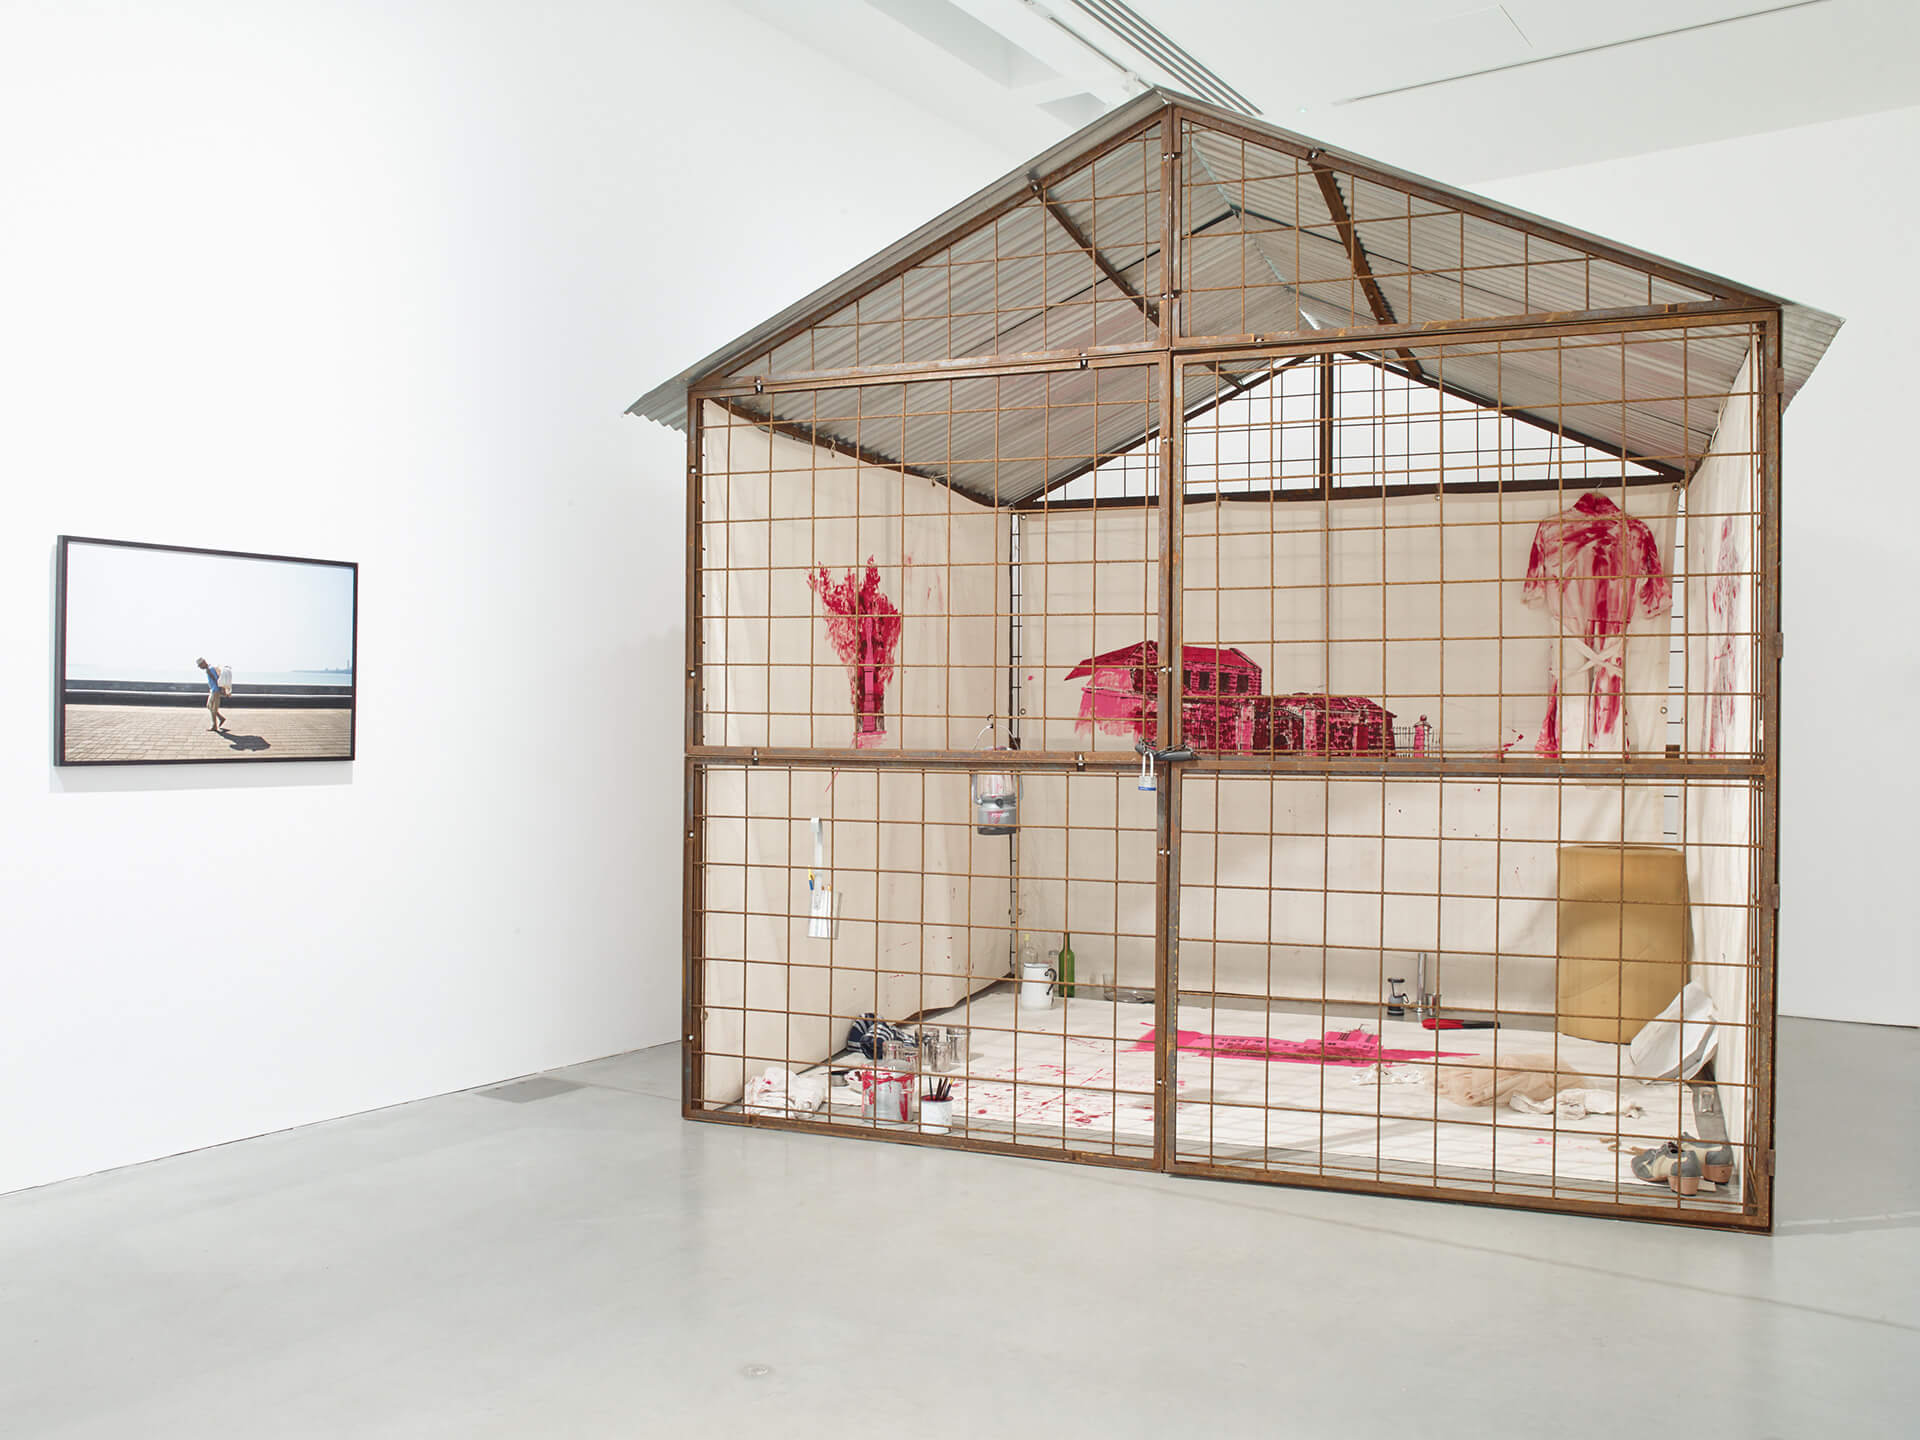 Exhibition installation view| Durjoy Bangladesh Foundation | STIRworld